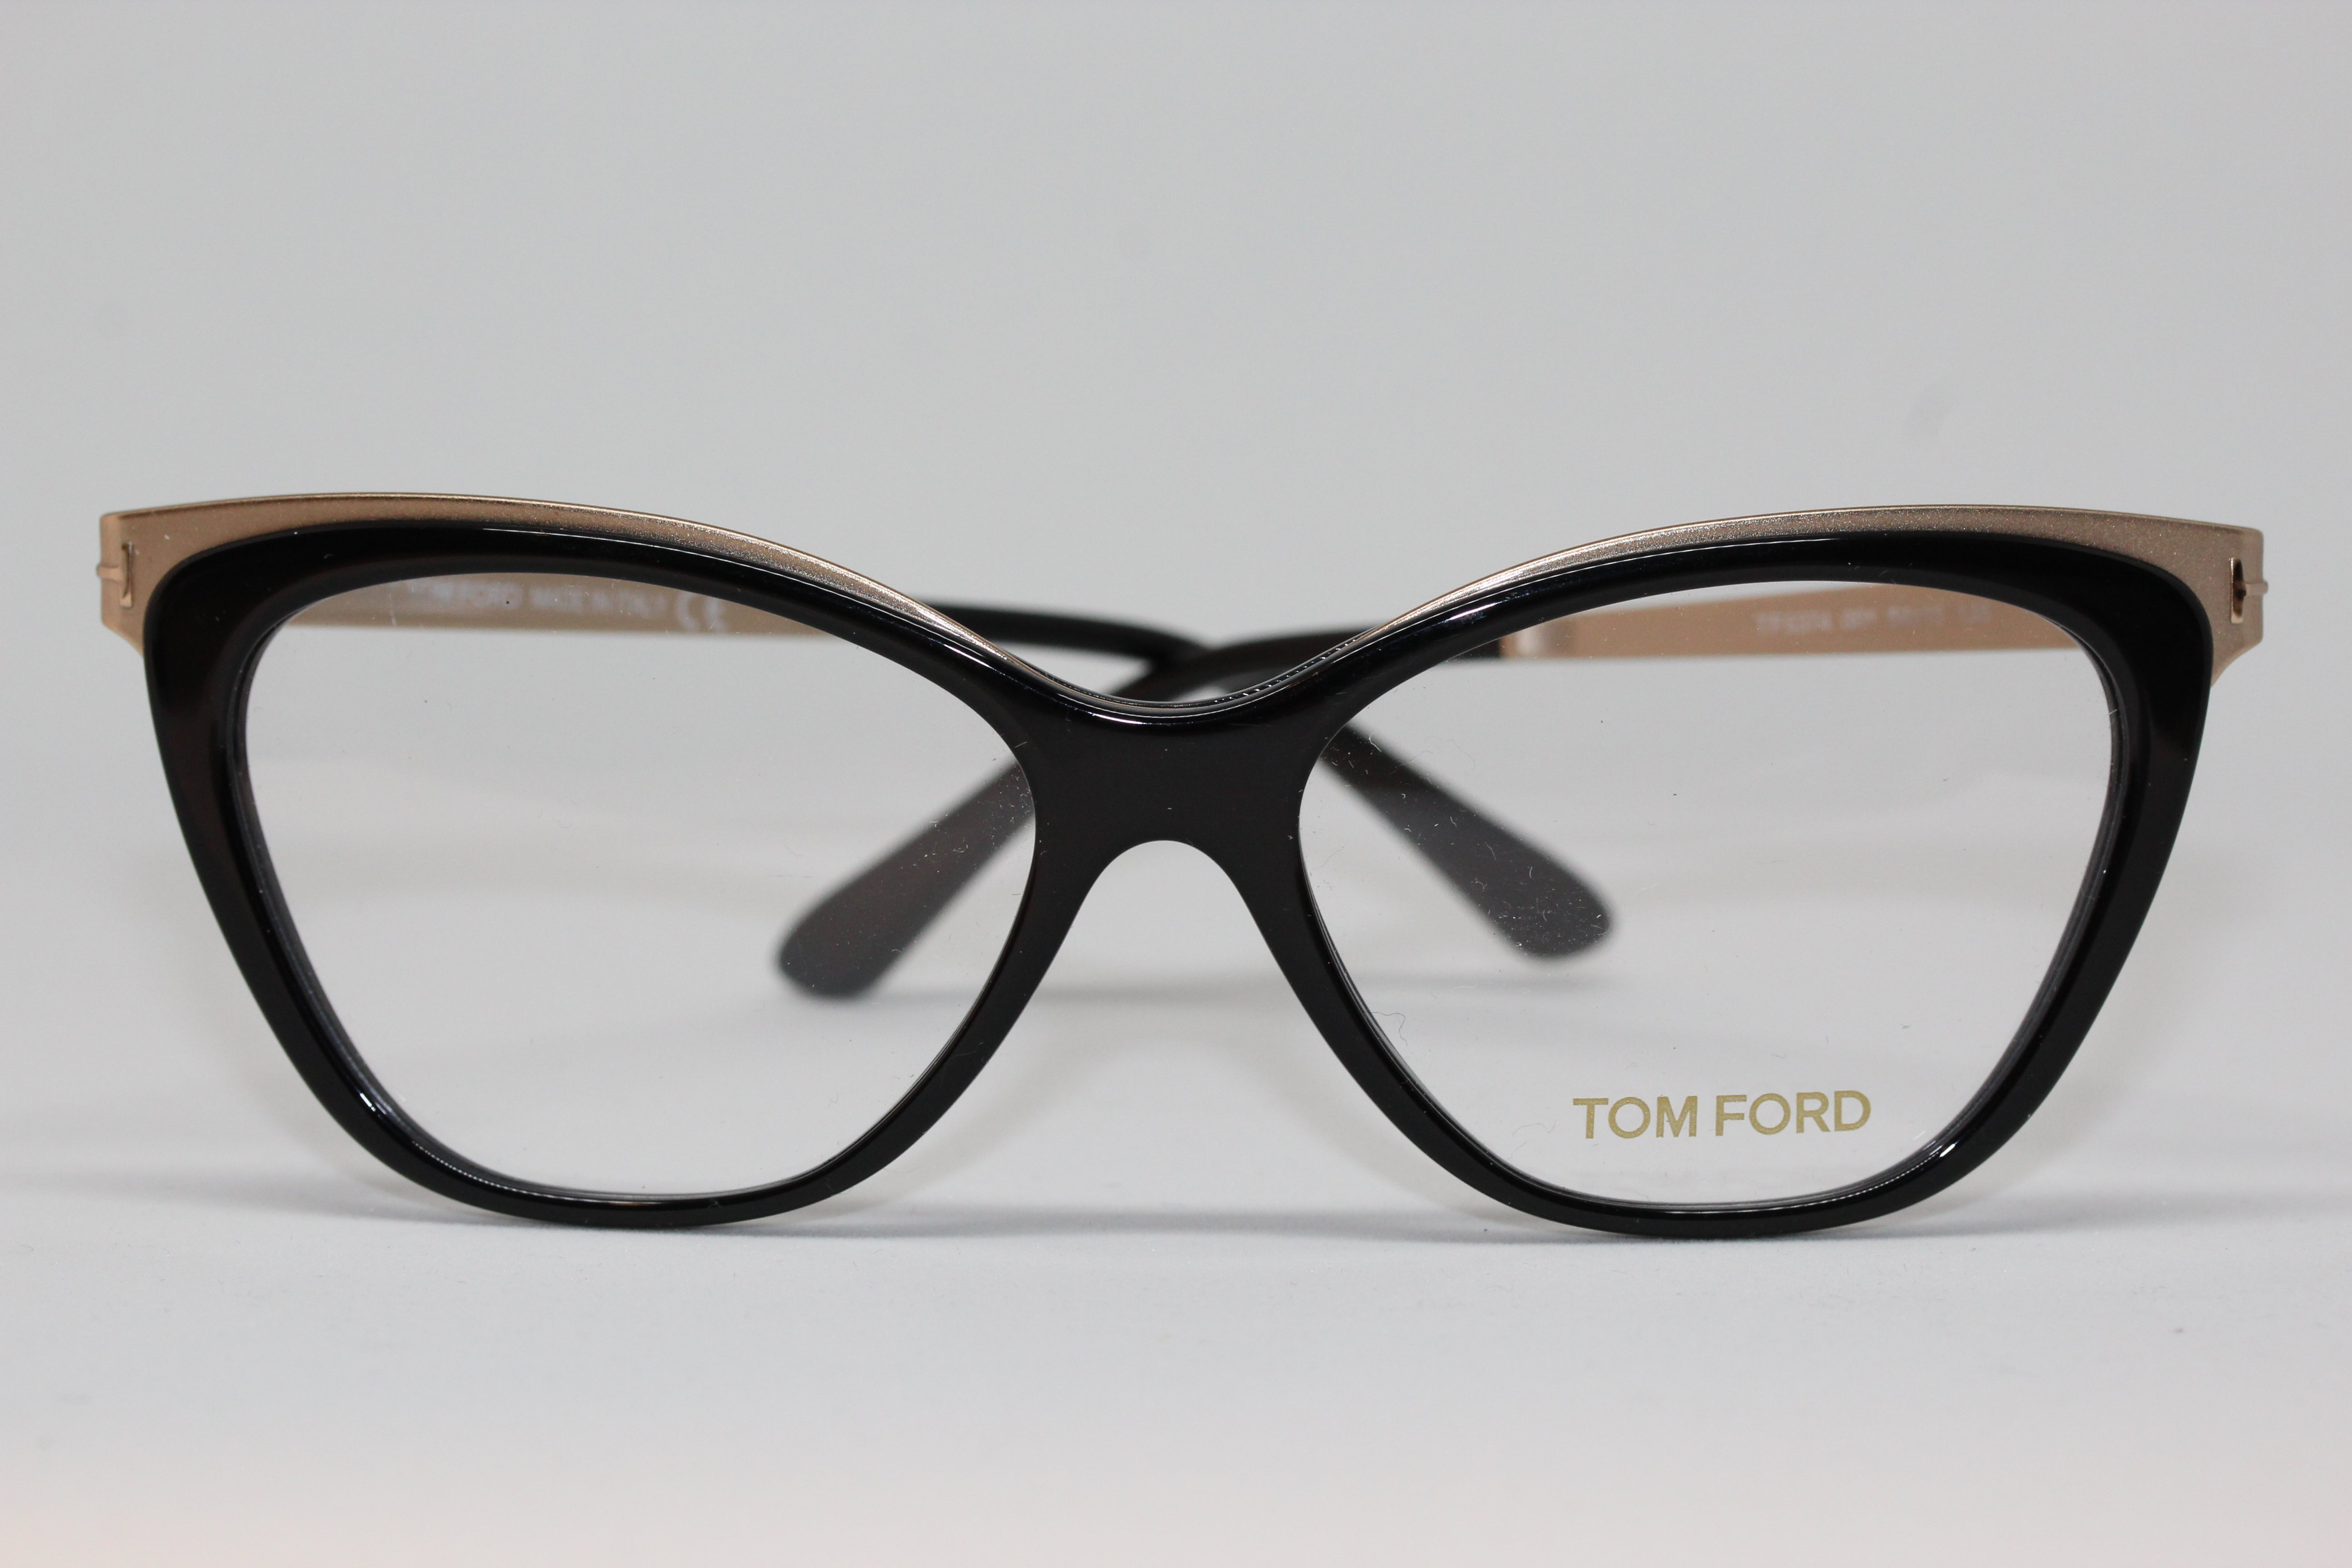 6292cc1d4e Tom Ford Shiny Black and Gold Cat Eye Eyeglasses for Women TF5374 001 Front  View